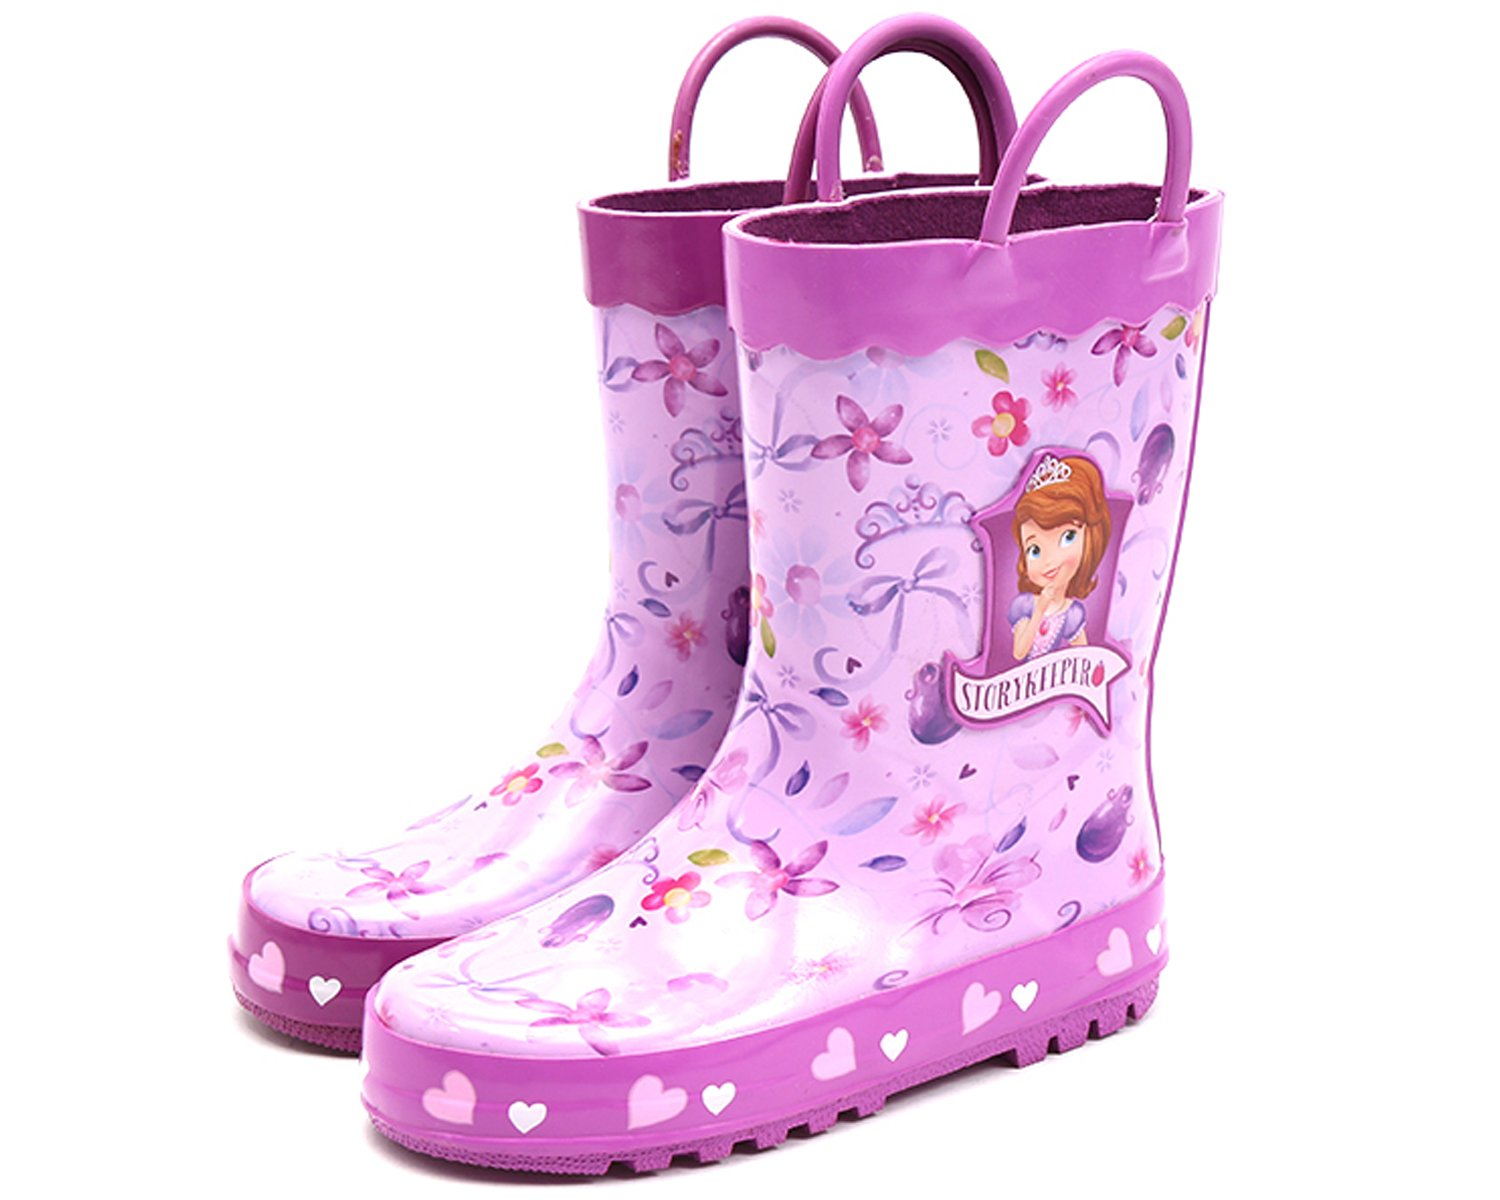 Joah Store Girls Purple Rain Boot Shoes Sofia The First Story Keeper (Parallel Import/Generic Product) (7 M US Toddler)